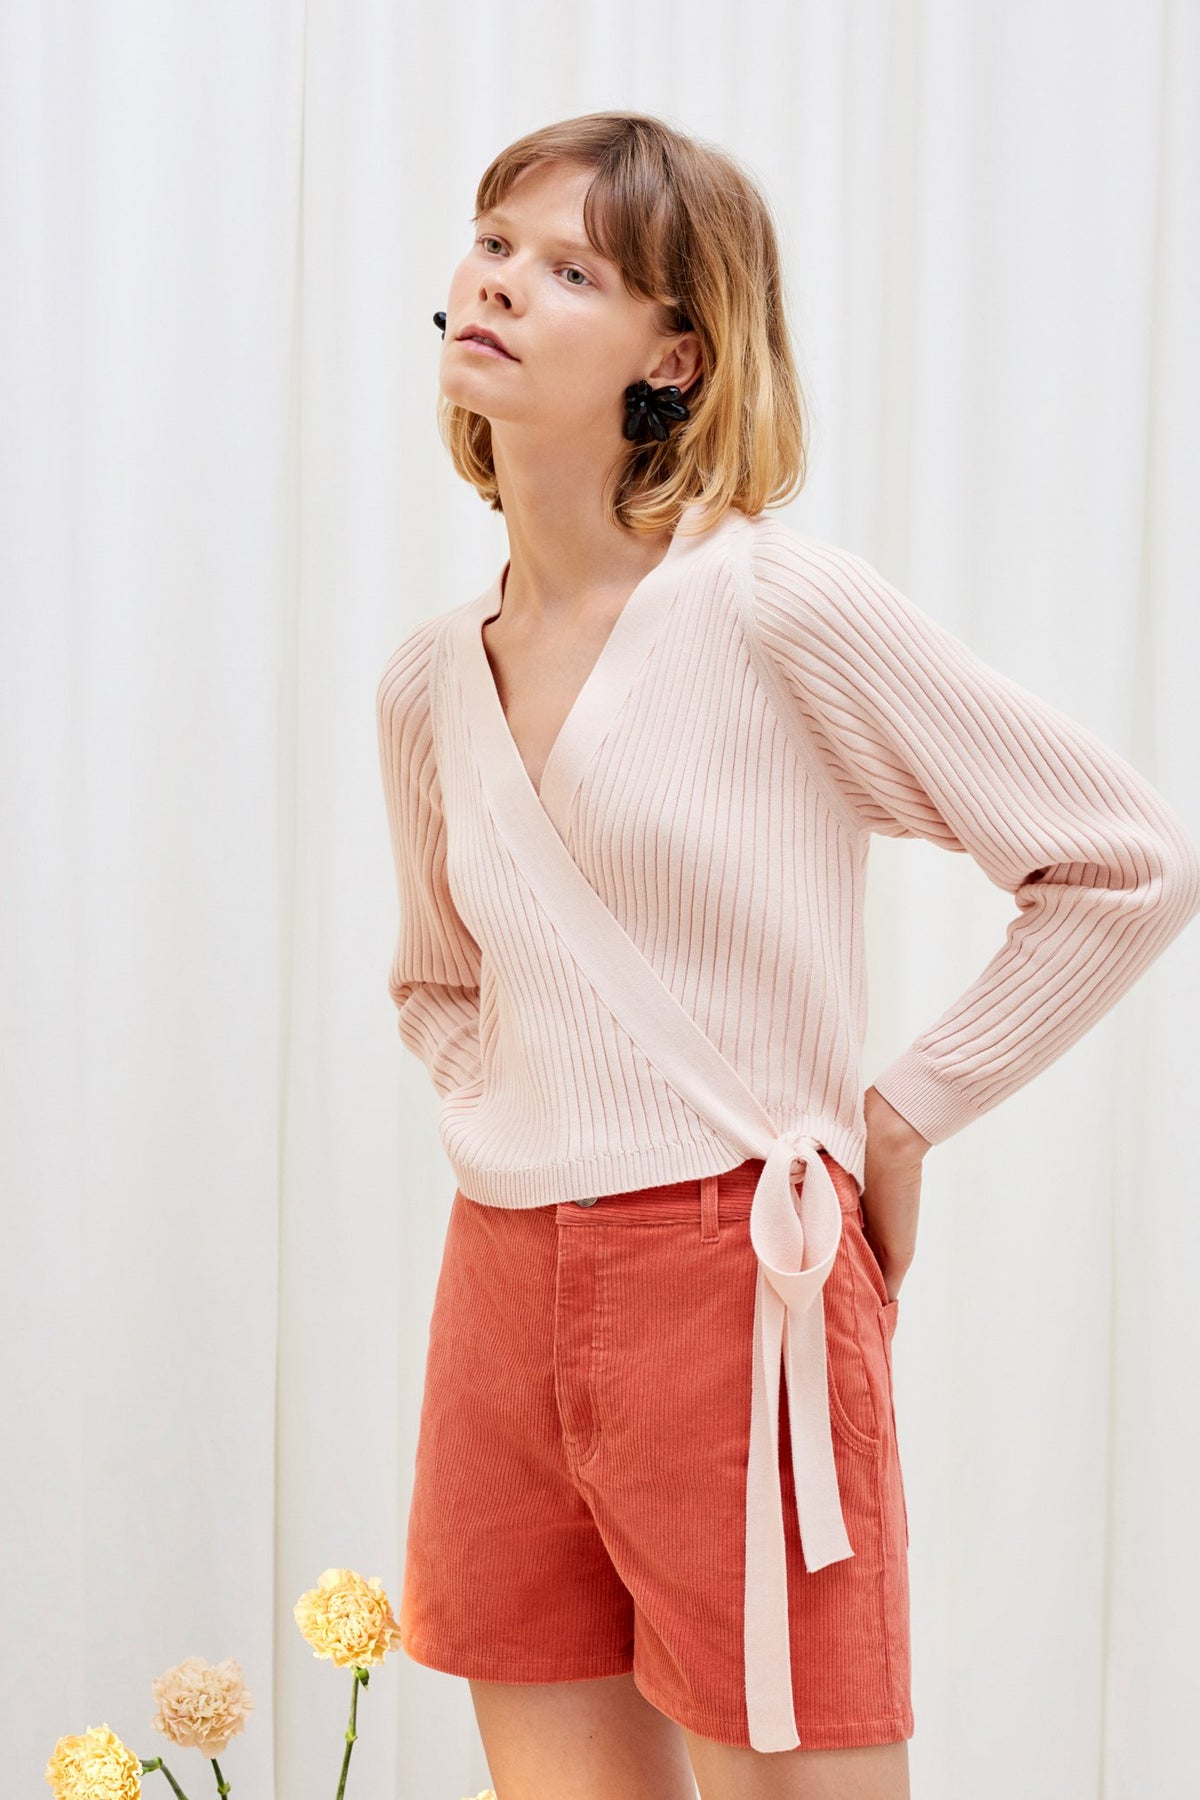 kowtow composure cardigan cotton knit organic cotton ethical clothing stockists Auckland Ponsonby